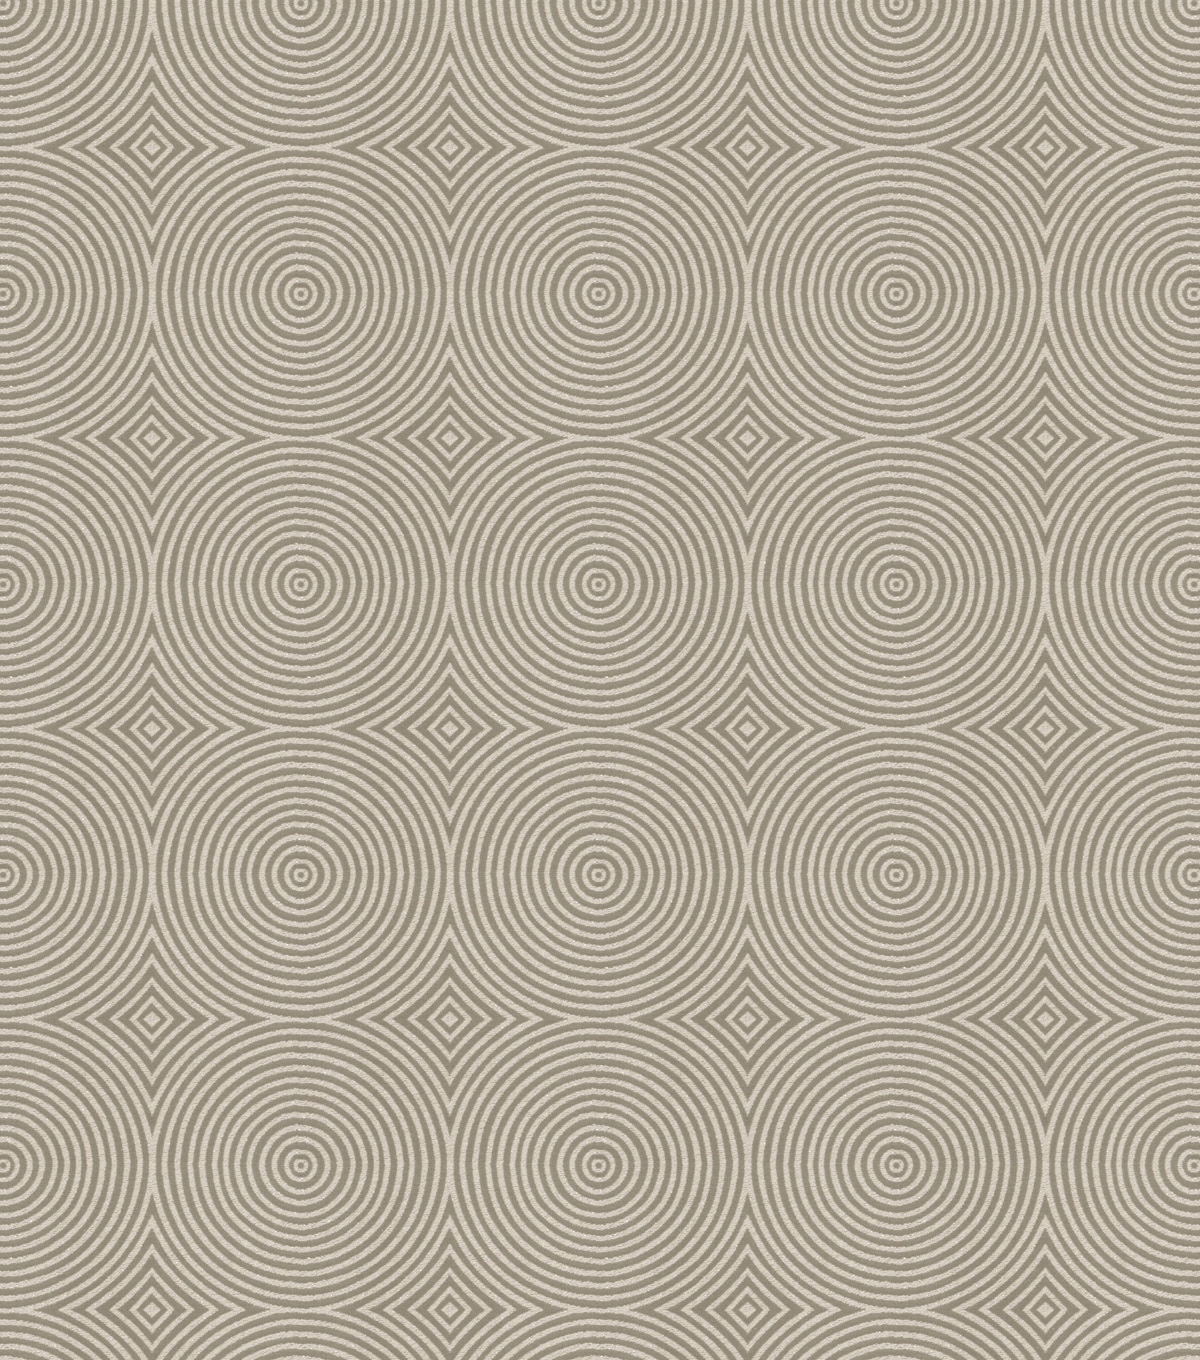 Eaton Square Multi-Purpose Decor Fabric 54\u0022-Circle Rot/Silver Haze